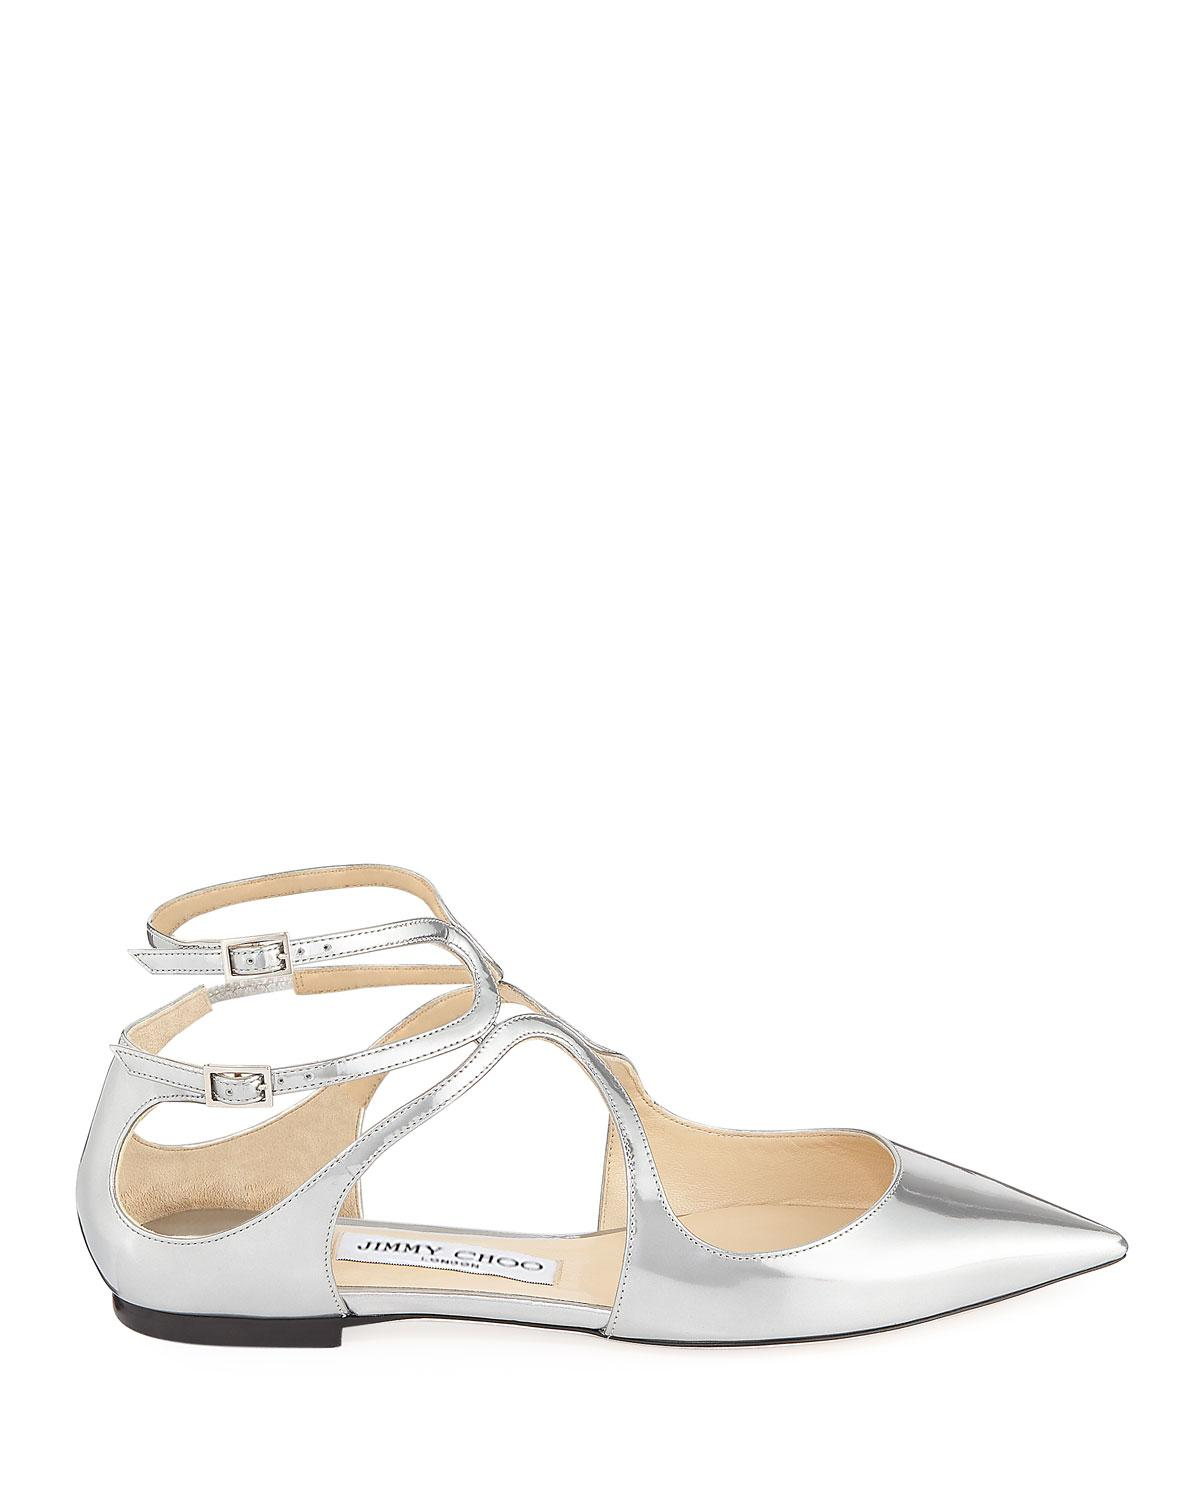 31fe9da0b93e Lyst - Jimmy Choo Lancer Metallic Leather Flat in Metallic